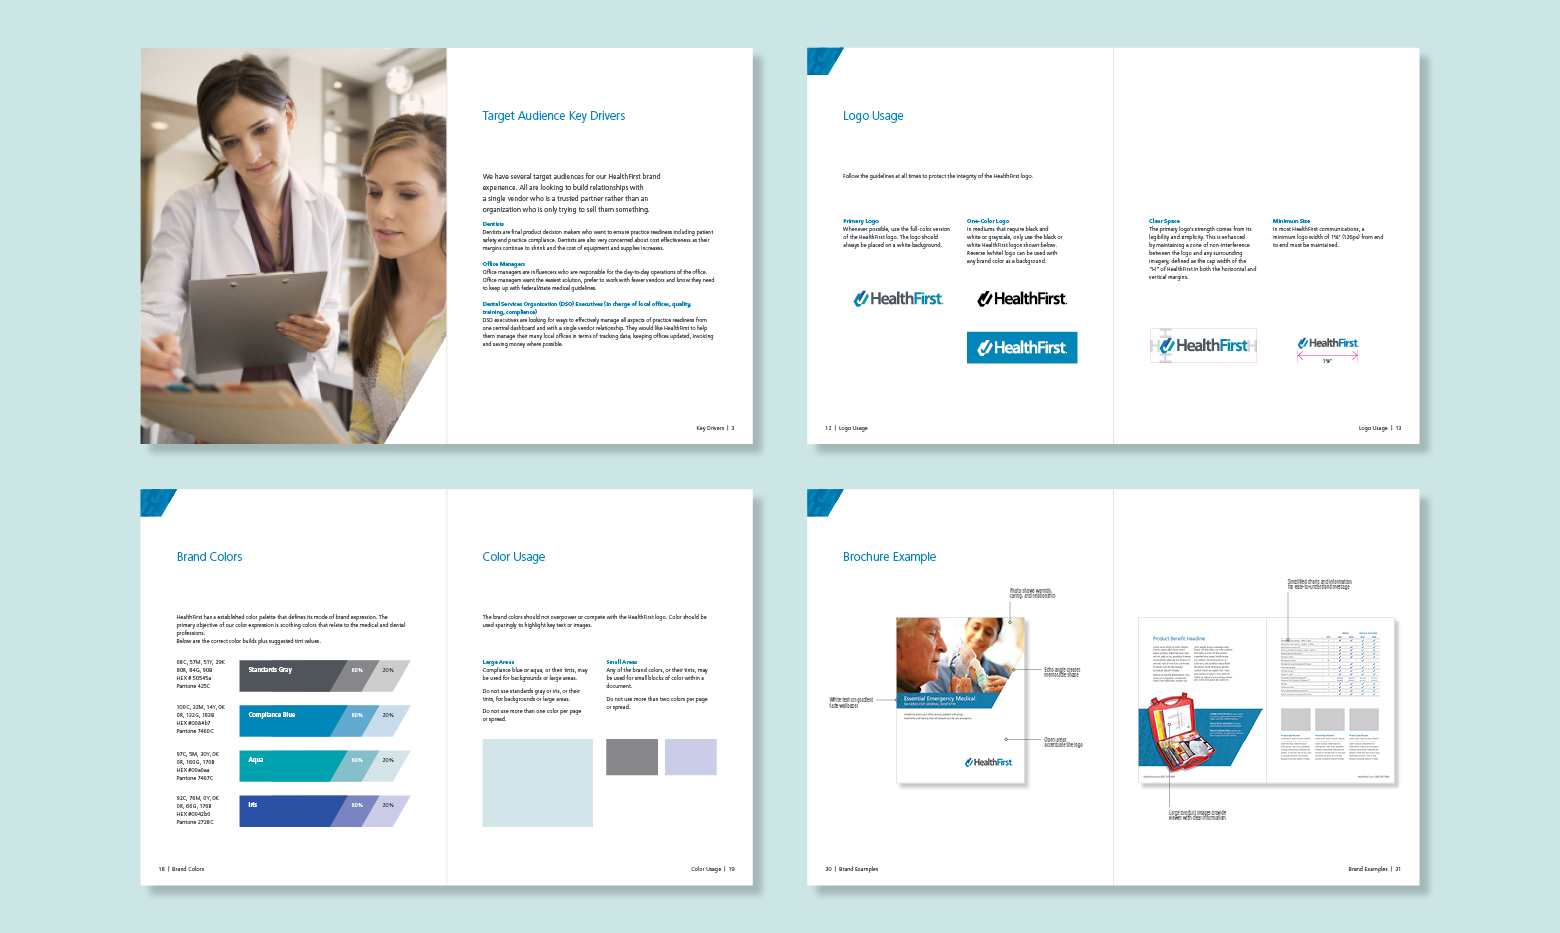 HealthFirst brand guideline pages